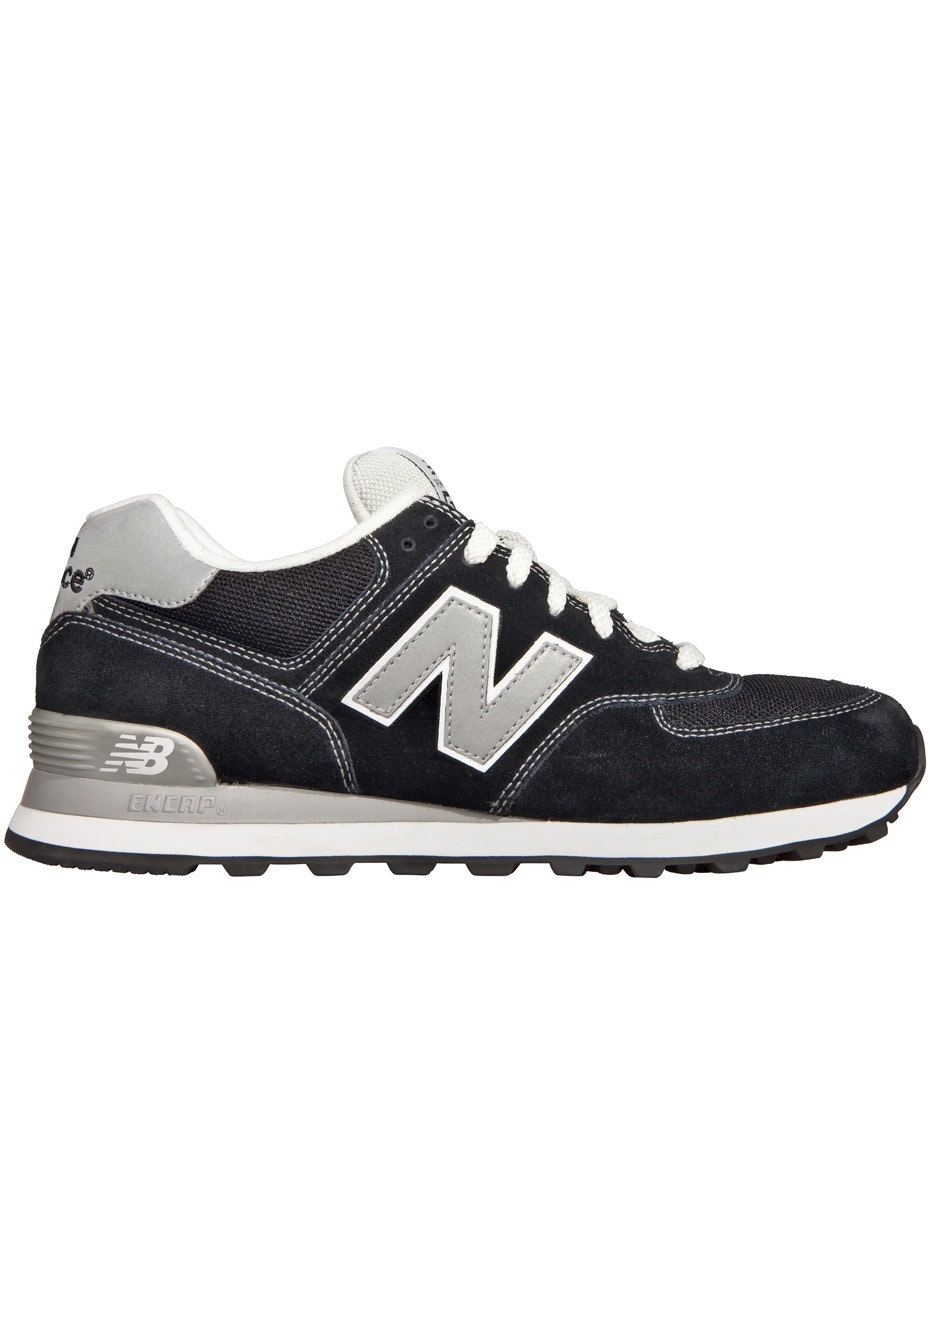 New Balance - Unisex - Core 574 - Black / Grey / White